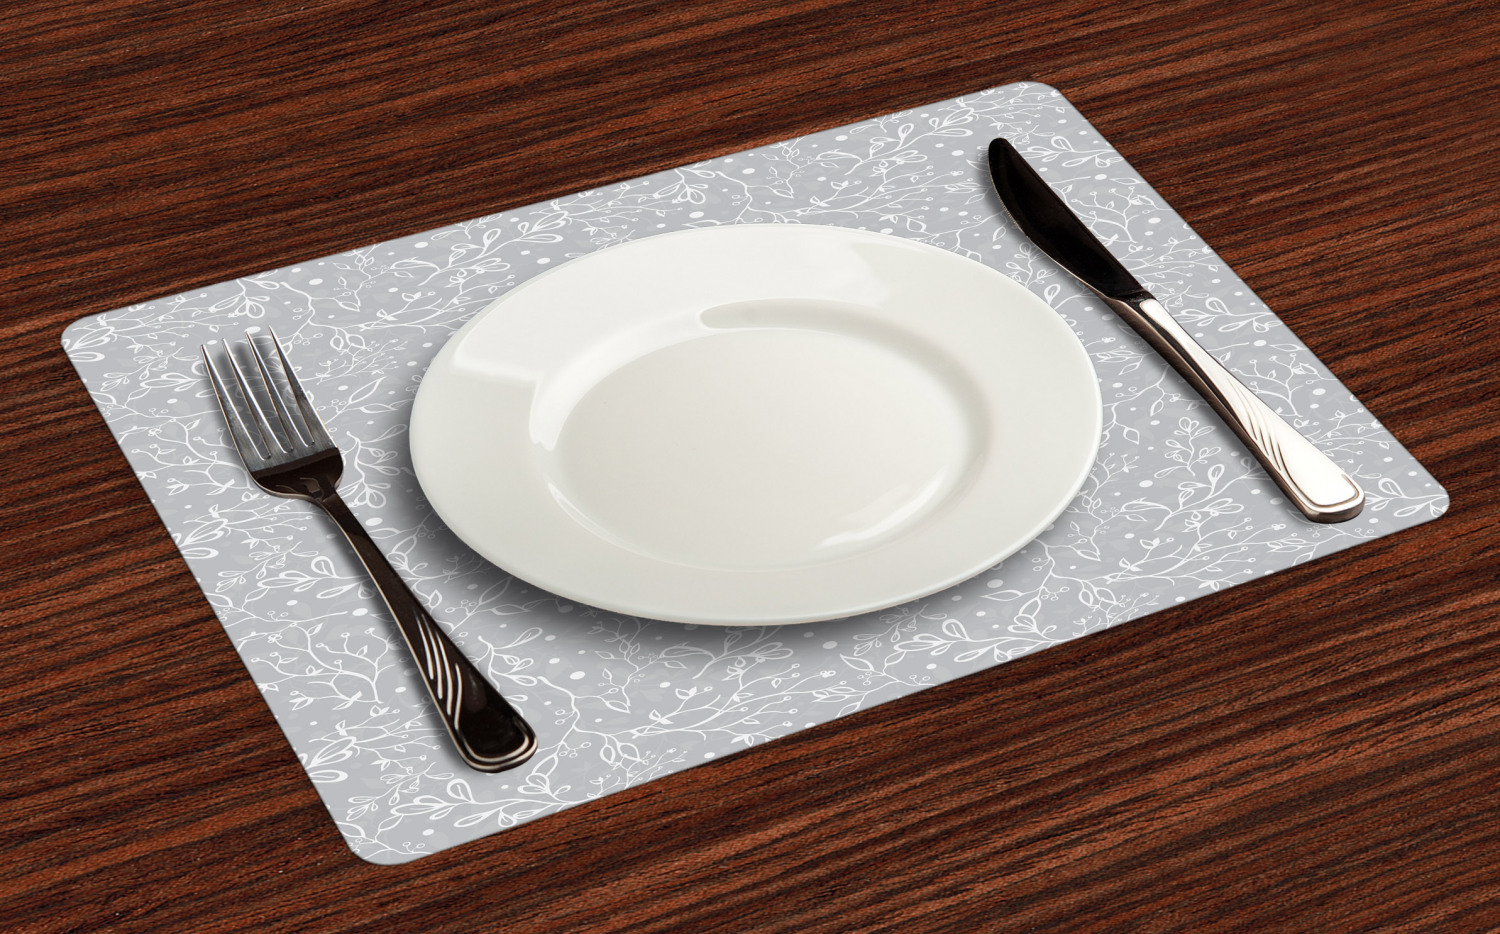 Ambesonne-Fabric-Place-Mats-Set-of-4-Placemats-for-Dining-Room-and-Kitchen-Table thumbnail 121